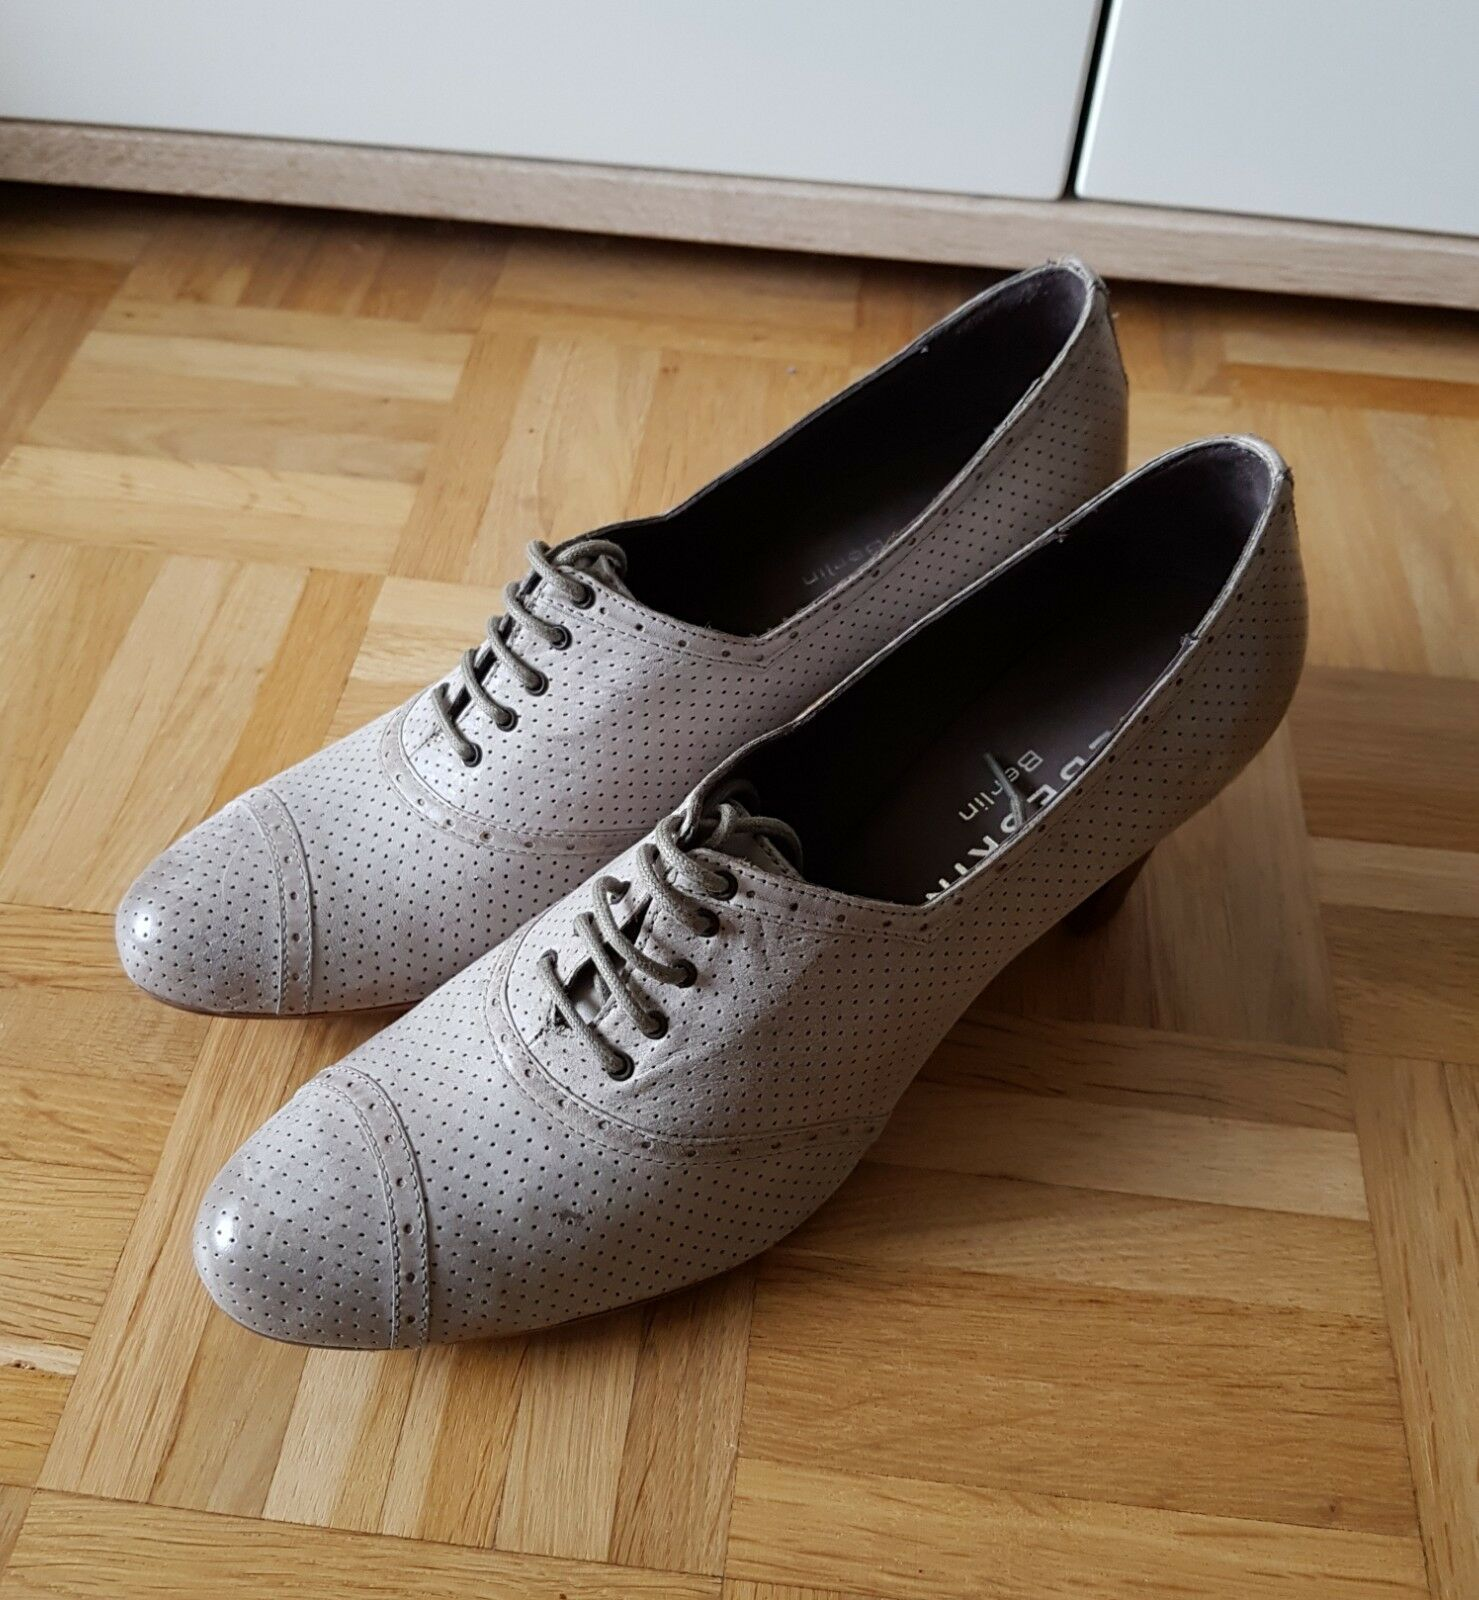 Liebeskind Berlin Pumps grau grau Pumps Leder 41 691583